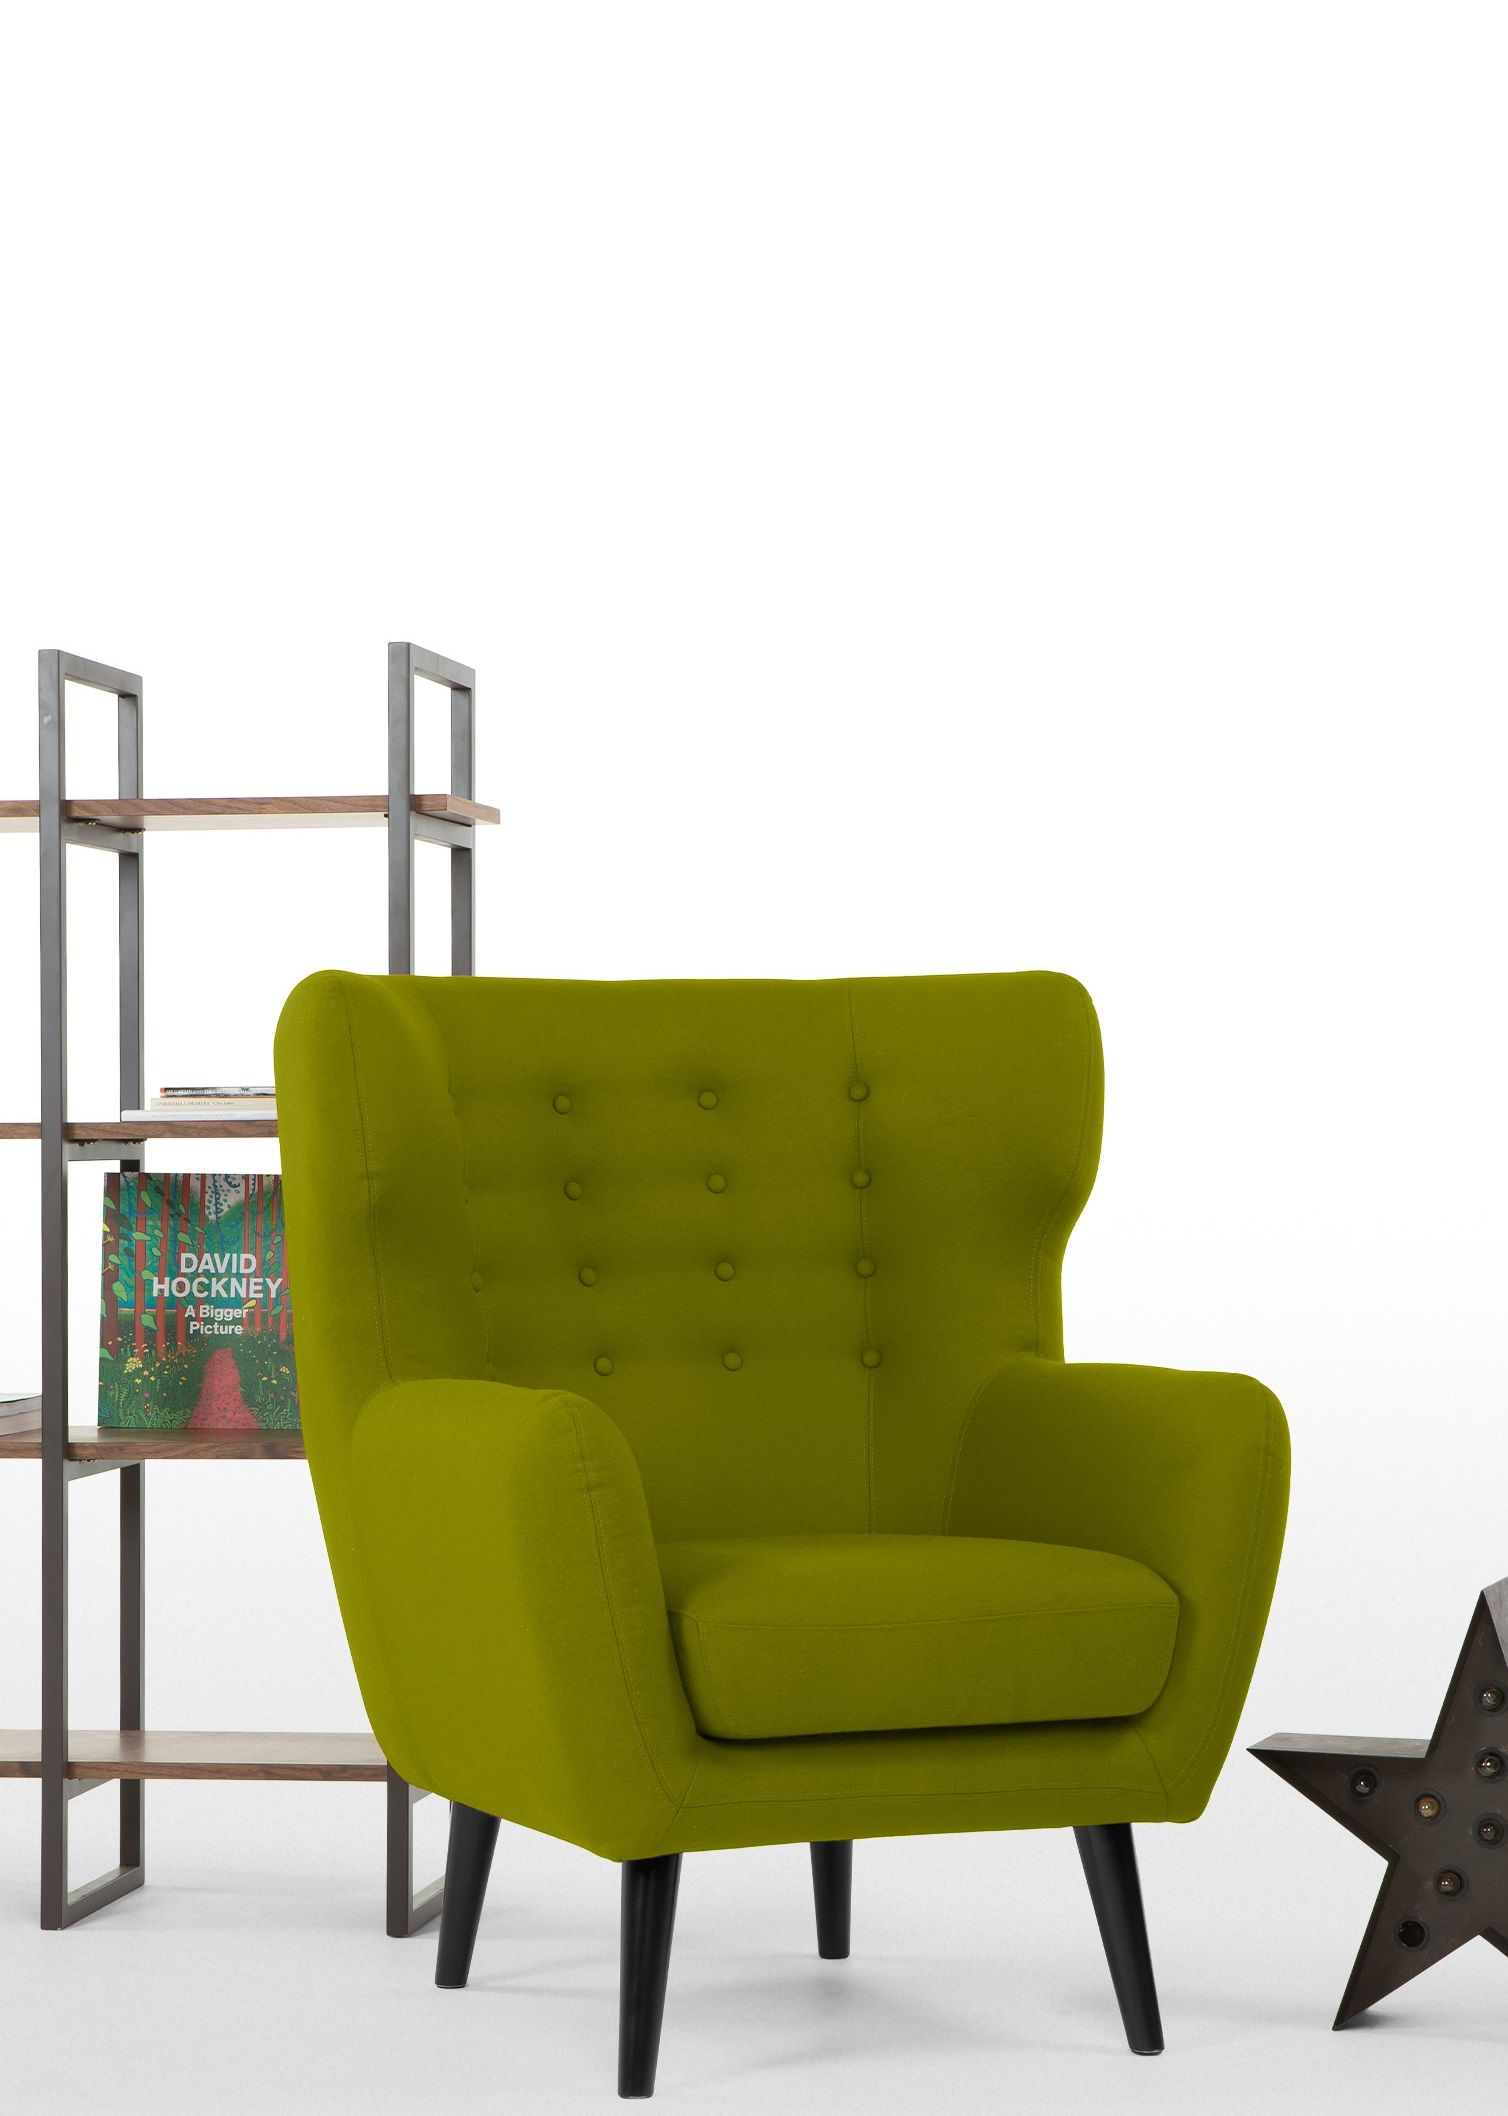 60s Style Furniture the kubrick wingback armchair, in fern green. retro 60s style